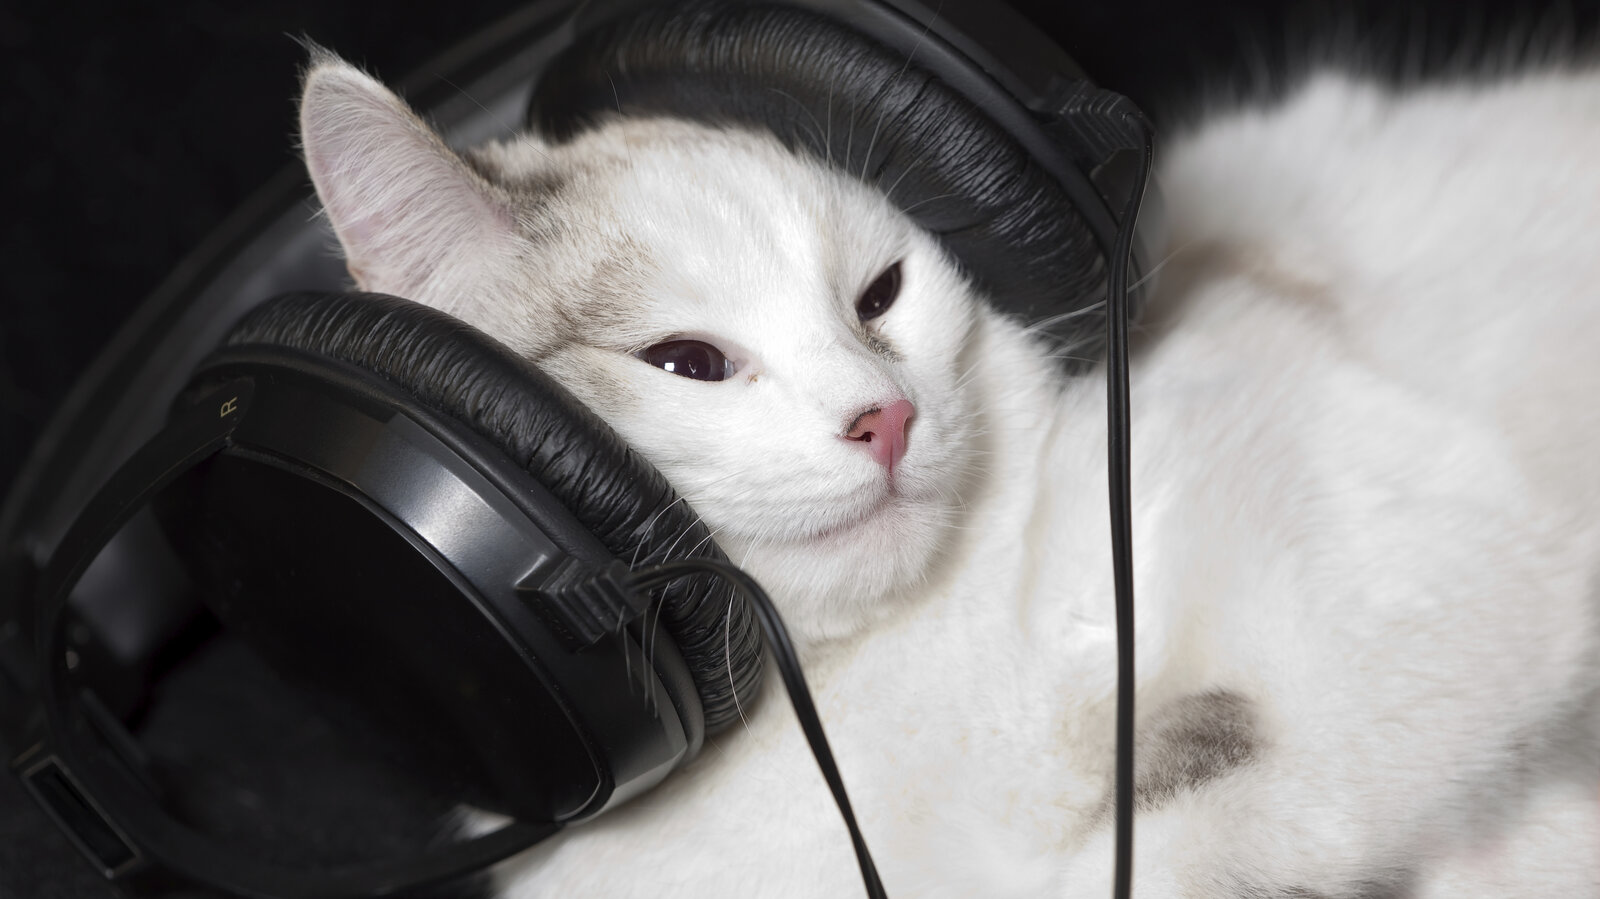 Music to Calm a Cat